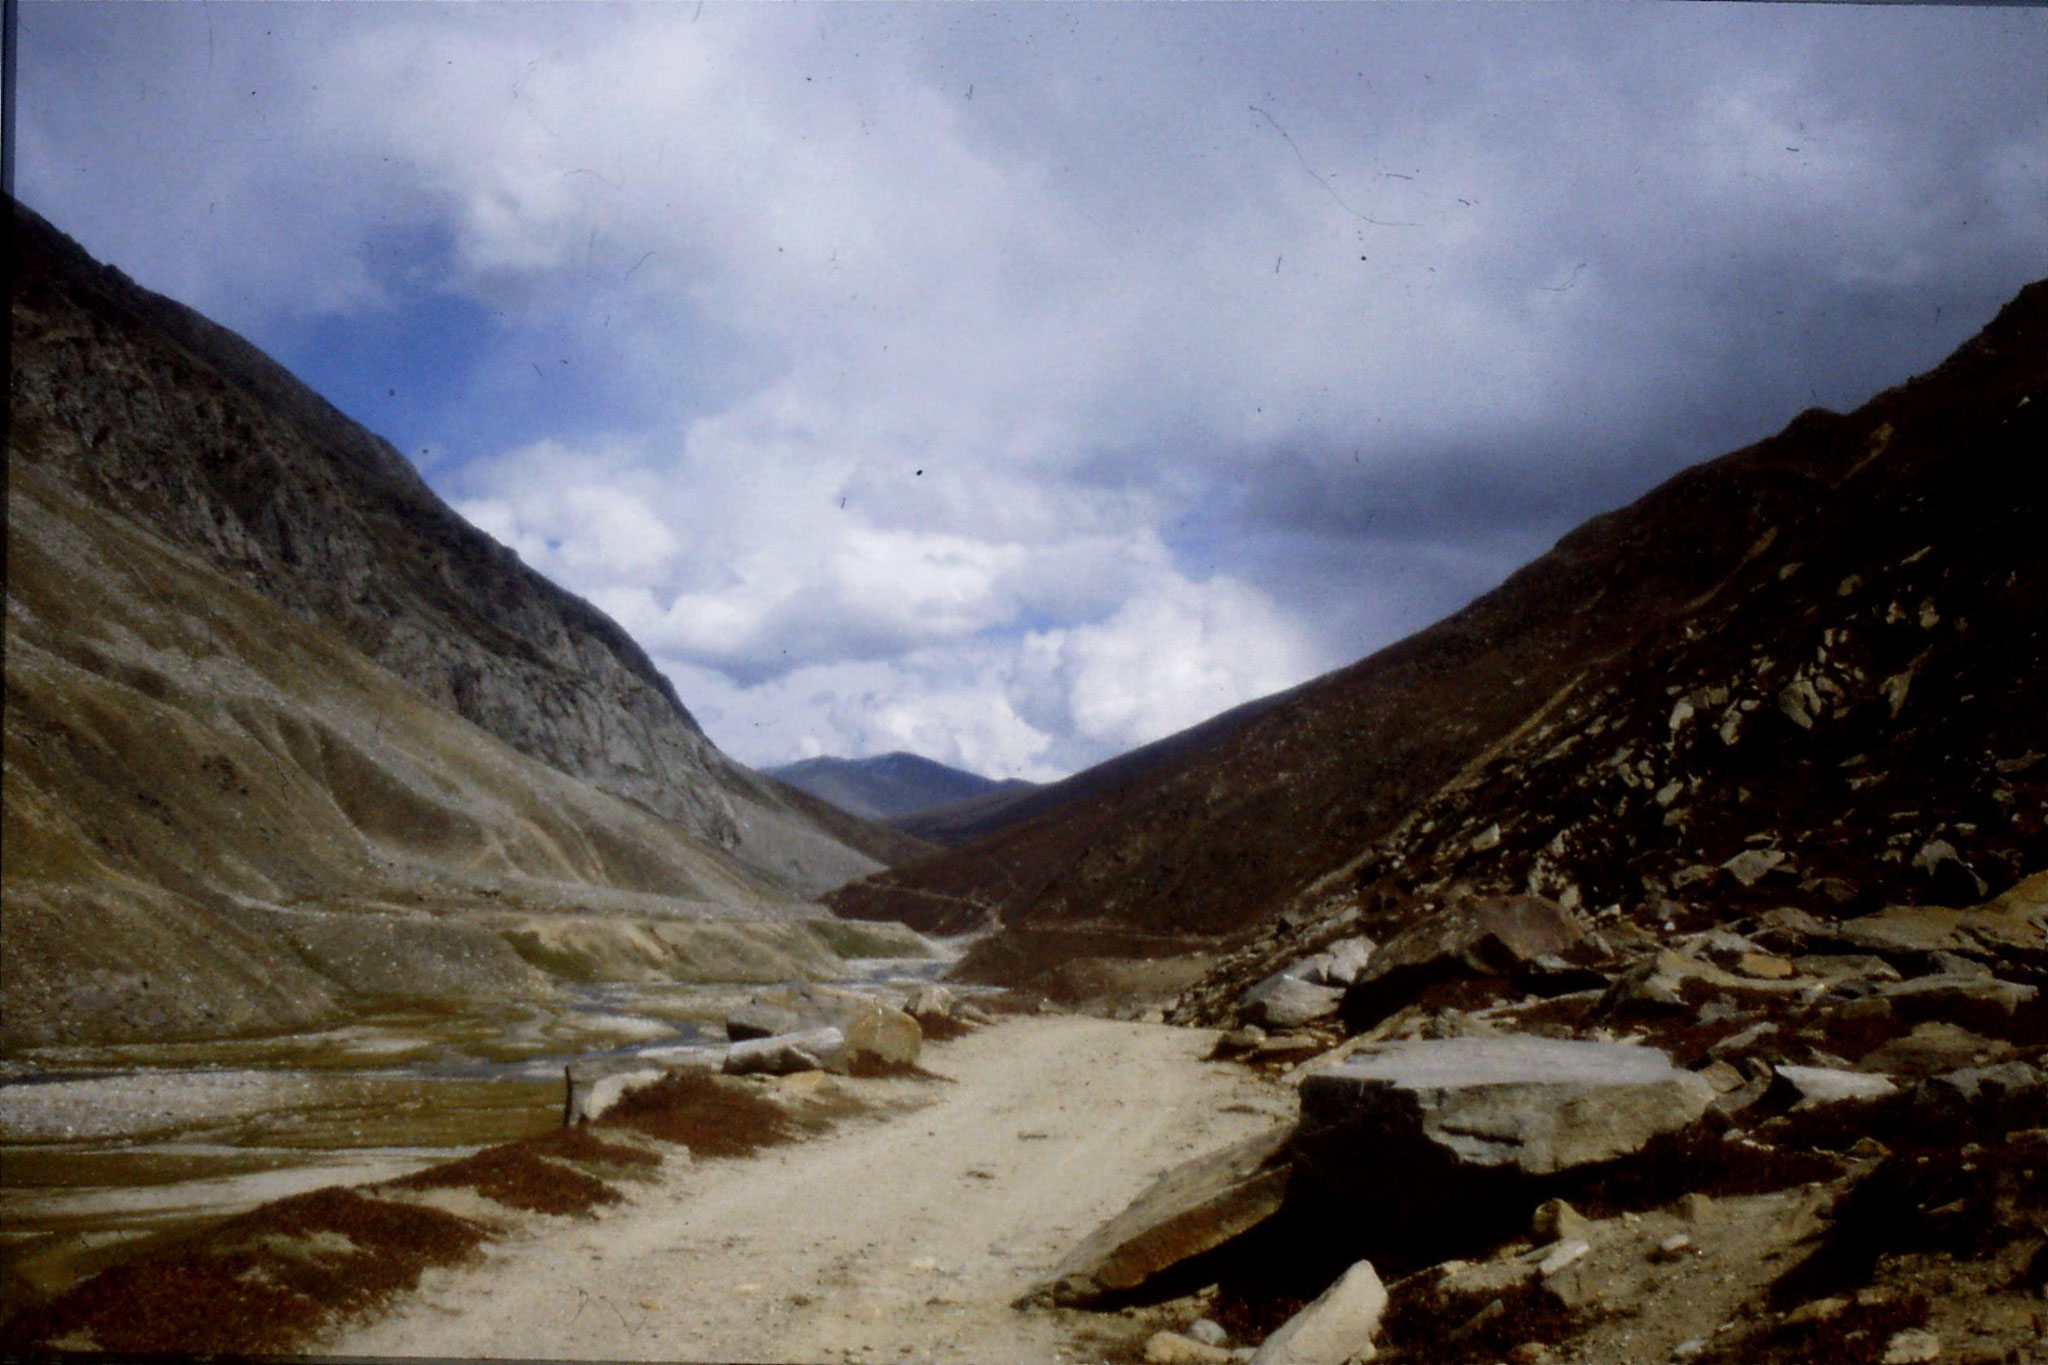 6/10/1989: 31: below Babusar Pass